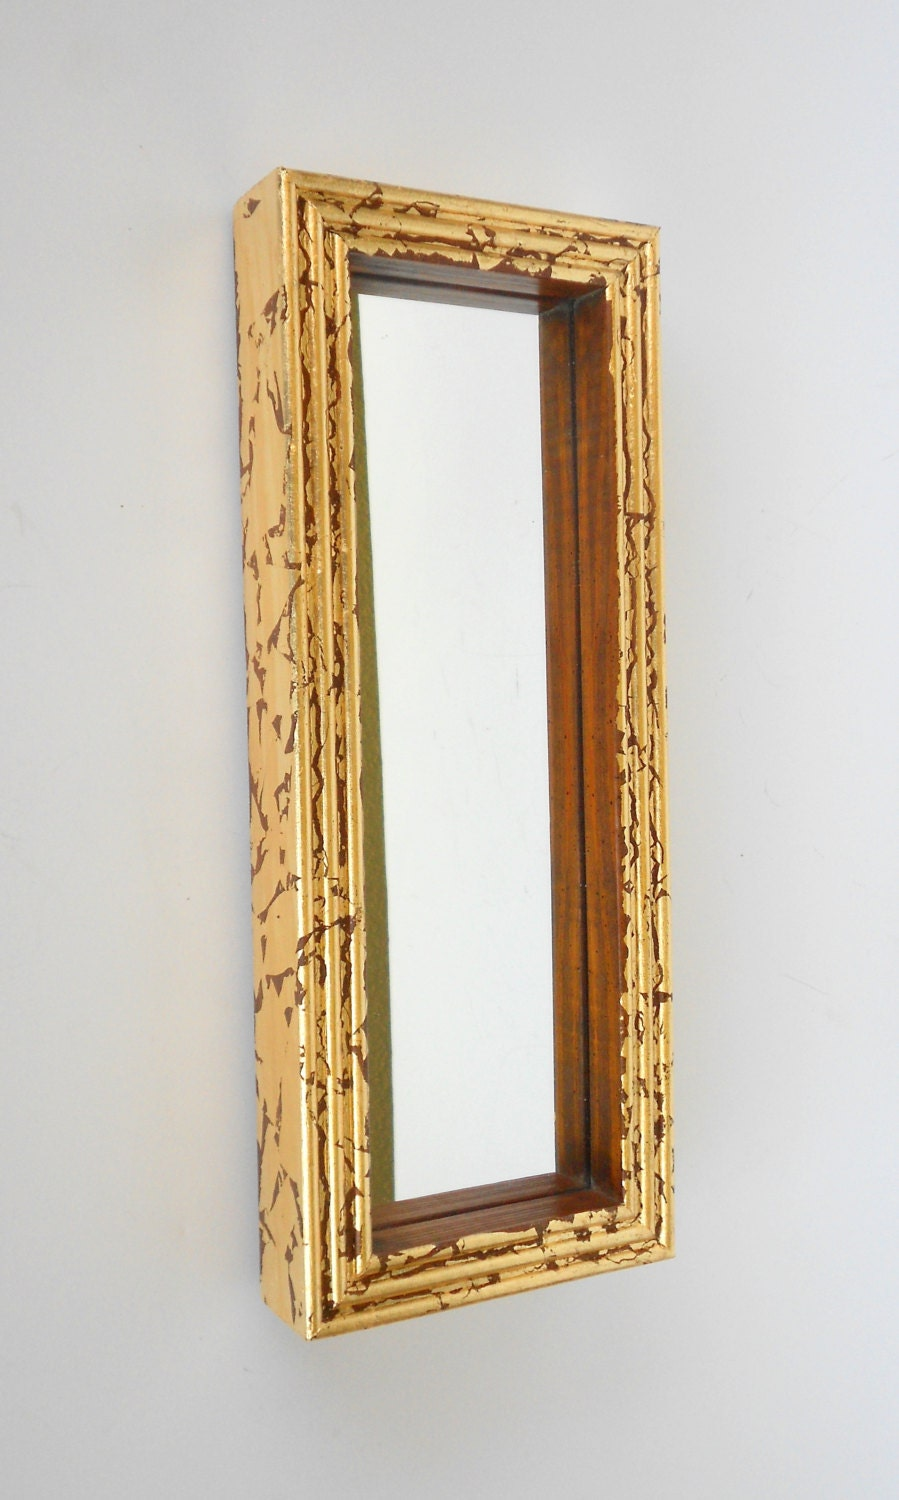 x5 mirror narrow mirror decorative wall mirror